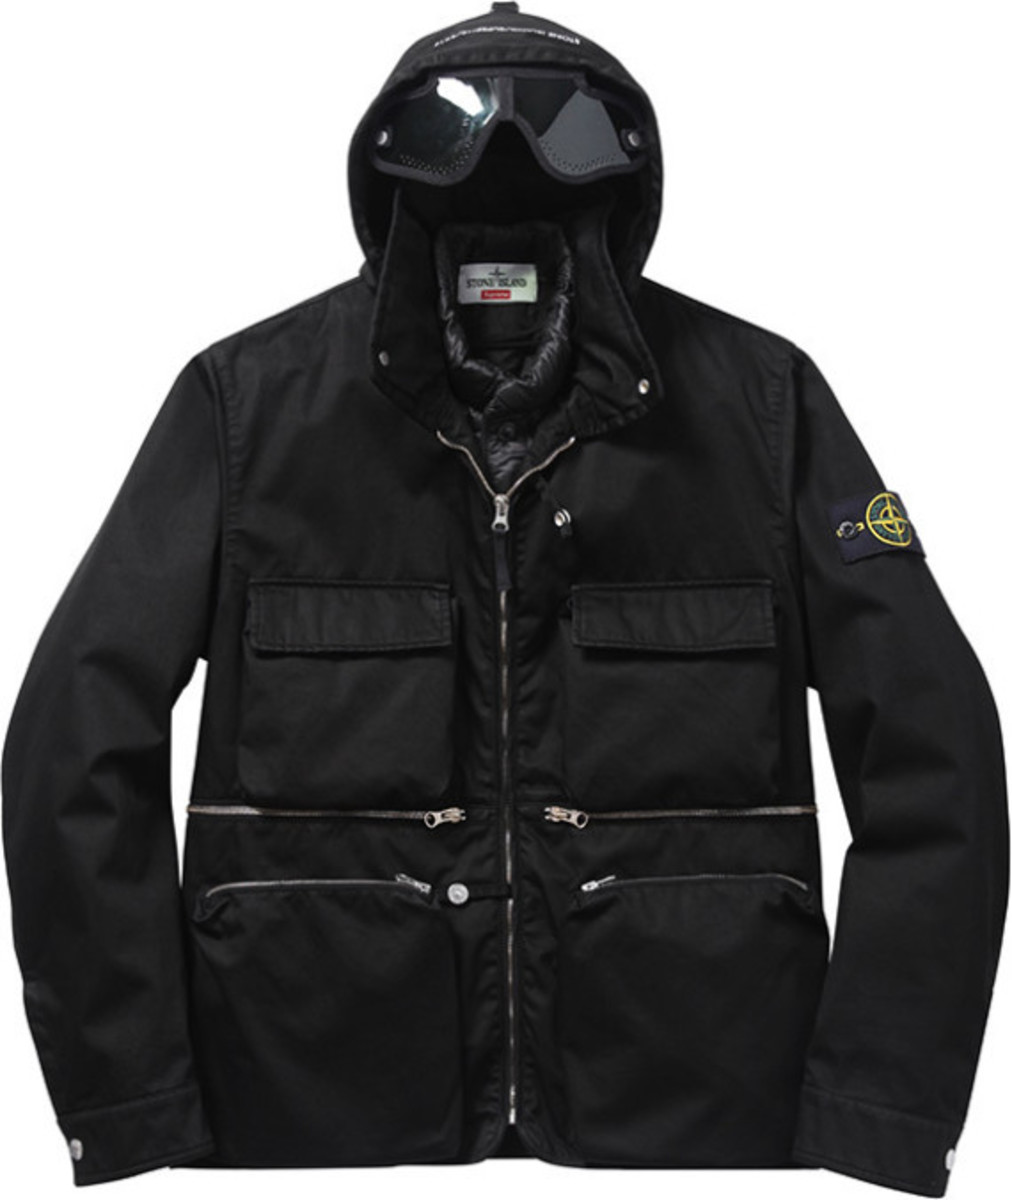 Supreme x Stone Island – Fall/Winter 2014 Collection | Available Now - 19